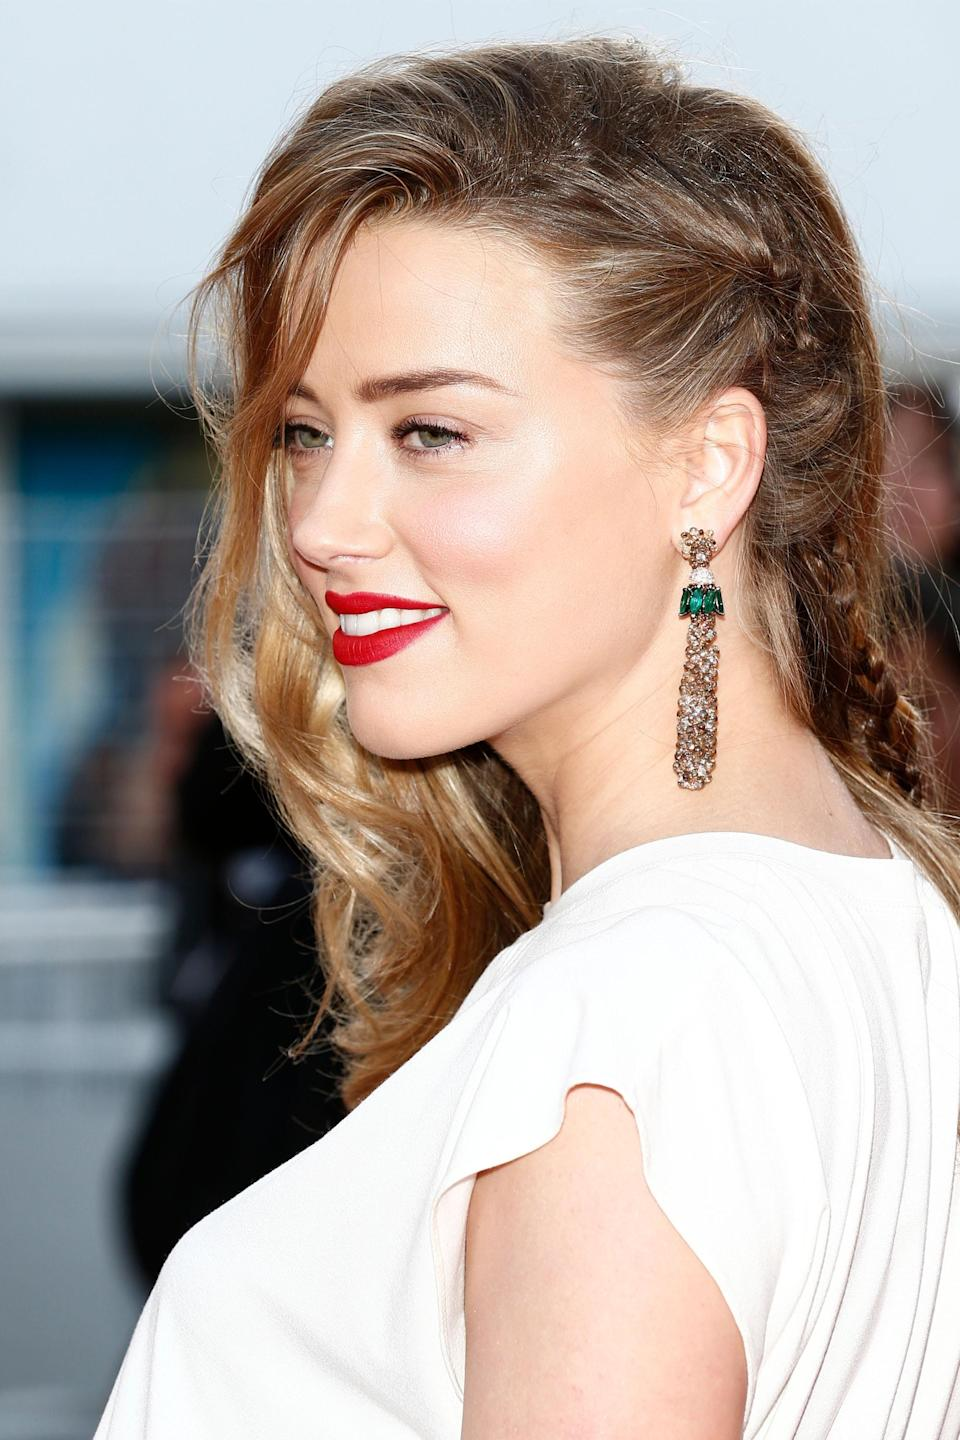 "<h3>Amber Heard</h3> <br>Who needs expensive <a href=""https://www.refinery29.com/en-us/headband-hairstyles"" rel=""nofollow noopener"" target=""_blank"" data-ylk=""slk:headbands"" class=""link rapid-noclick-resp"">headbands</a> when you have opposable thumbs to weave a bitty French braid accent into your hair?<span class=""copyright"">Photo: Andreas Rentz/Getty Images. </span><br>"